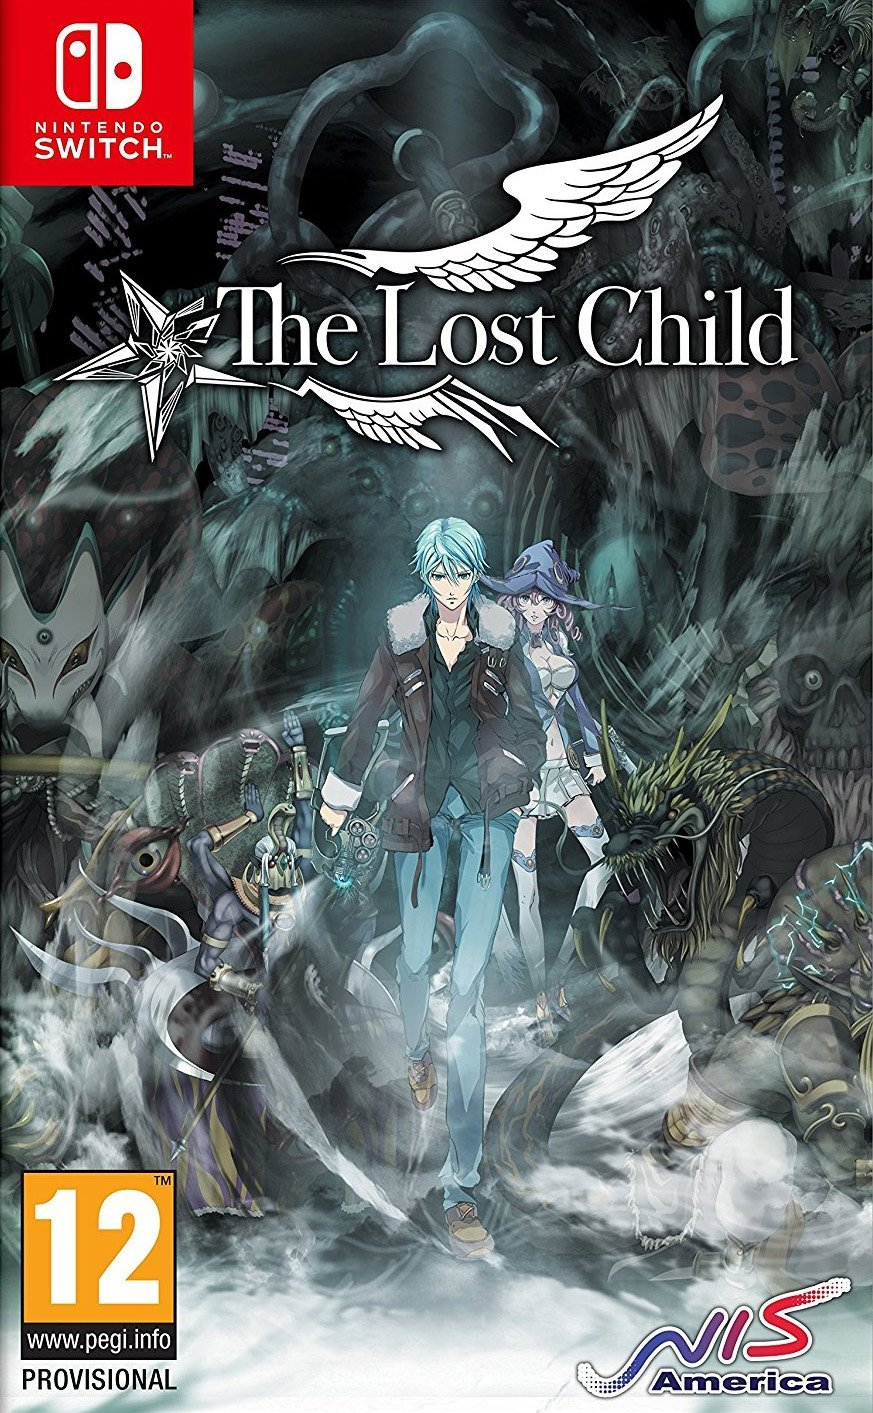 The Lost Child (Nintendo Switch) imagen